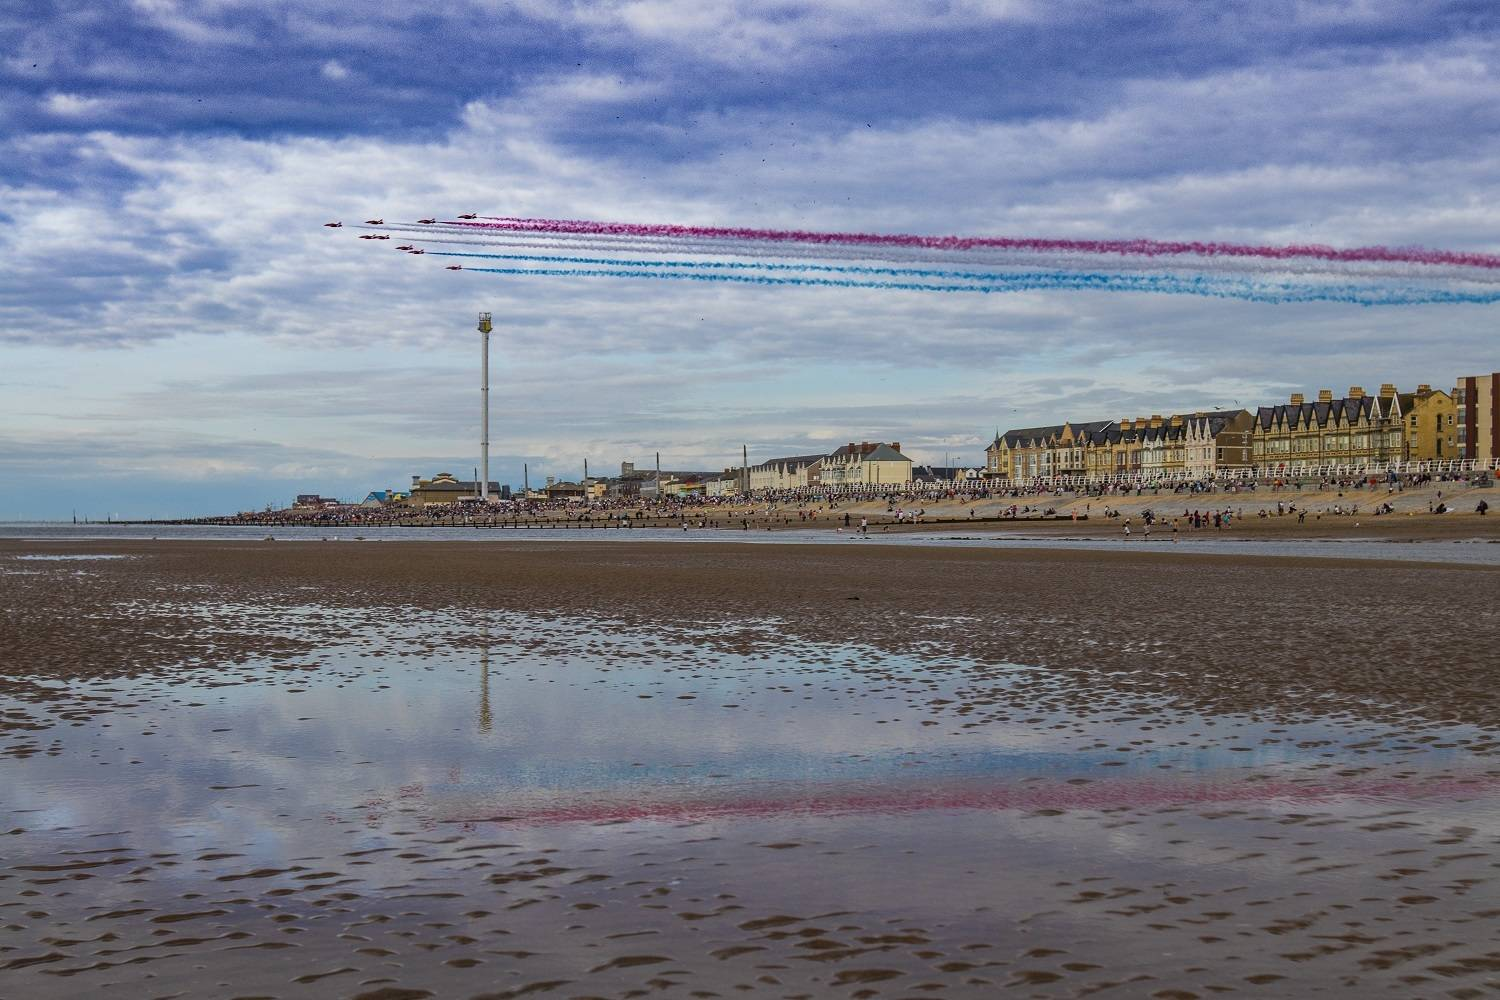 A photograph of the red arrows flying display over Rhyl beach